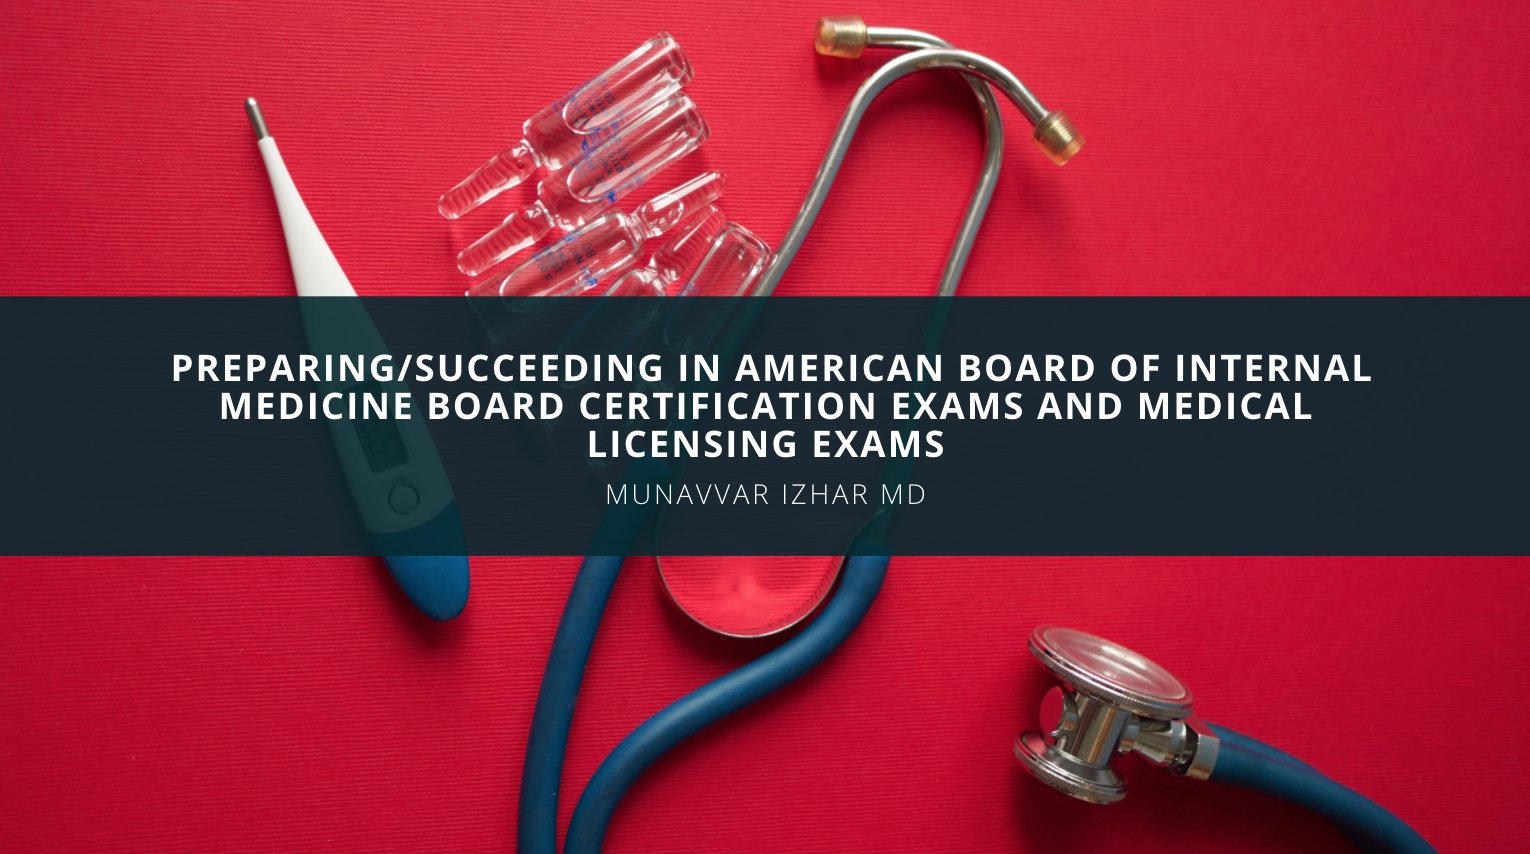 Munavvar Izhar MD Discusses Preparing and Succeeding in American Board of Internal Medicine Board Certification Exams and Medical Licensing Exams: